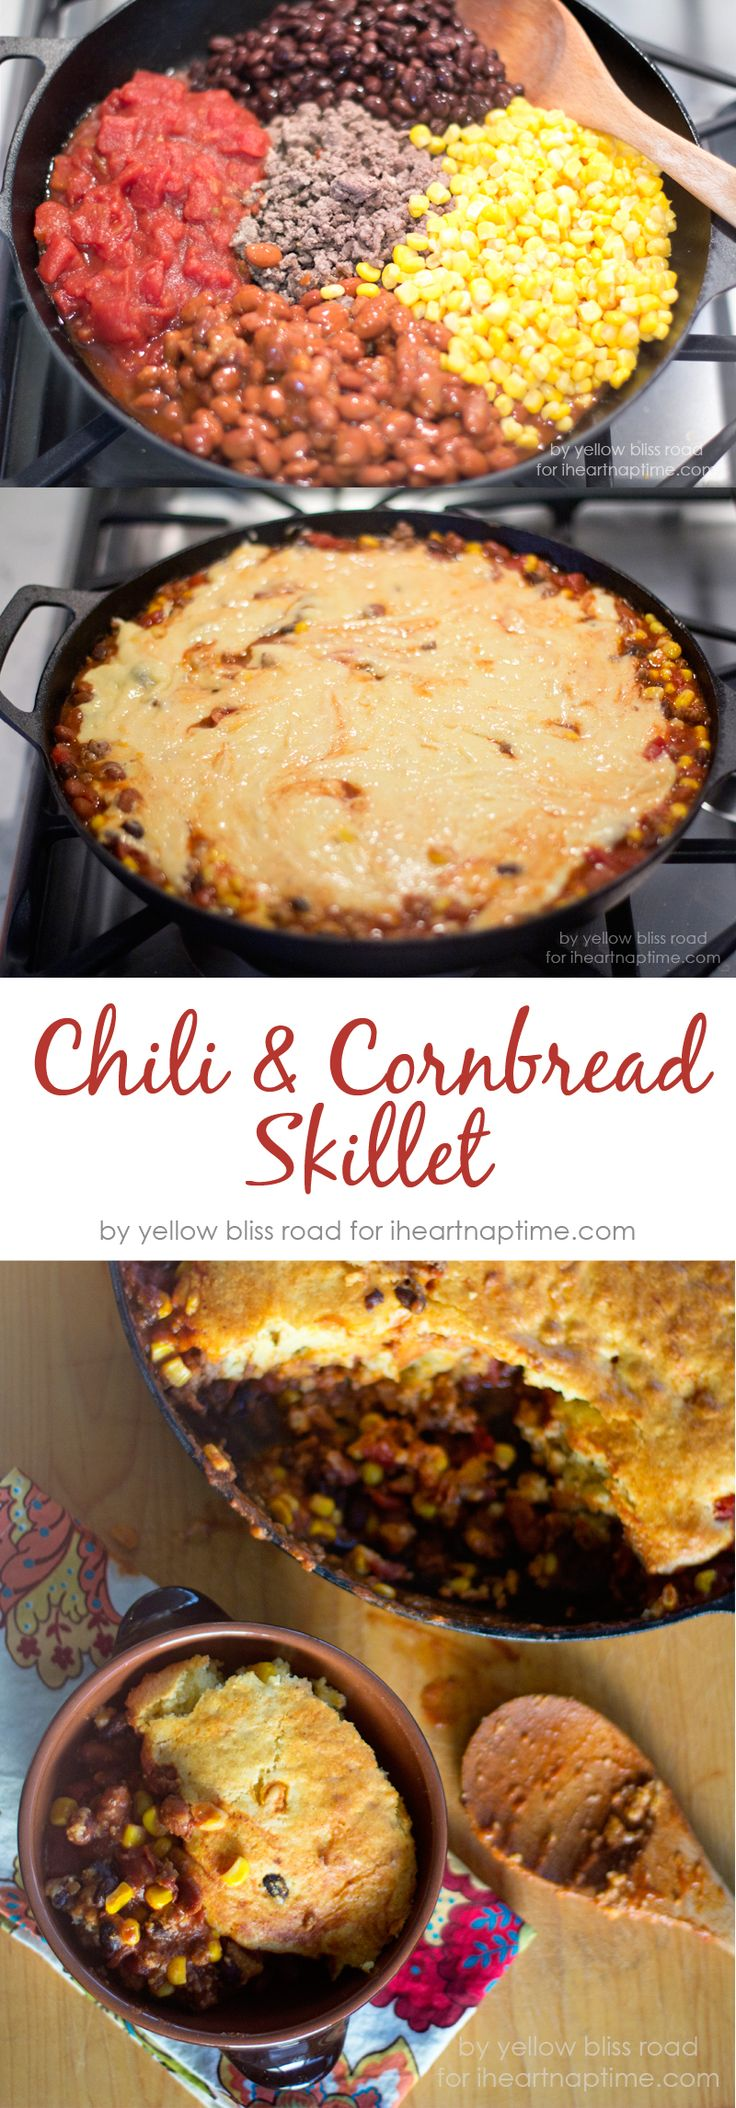 Chili and Cornbread Skillet on iheartnaptime.com ...the perfect dinner recipe for fall! YUM!